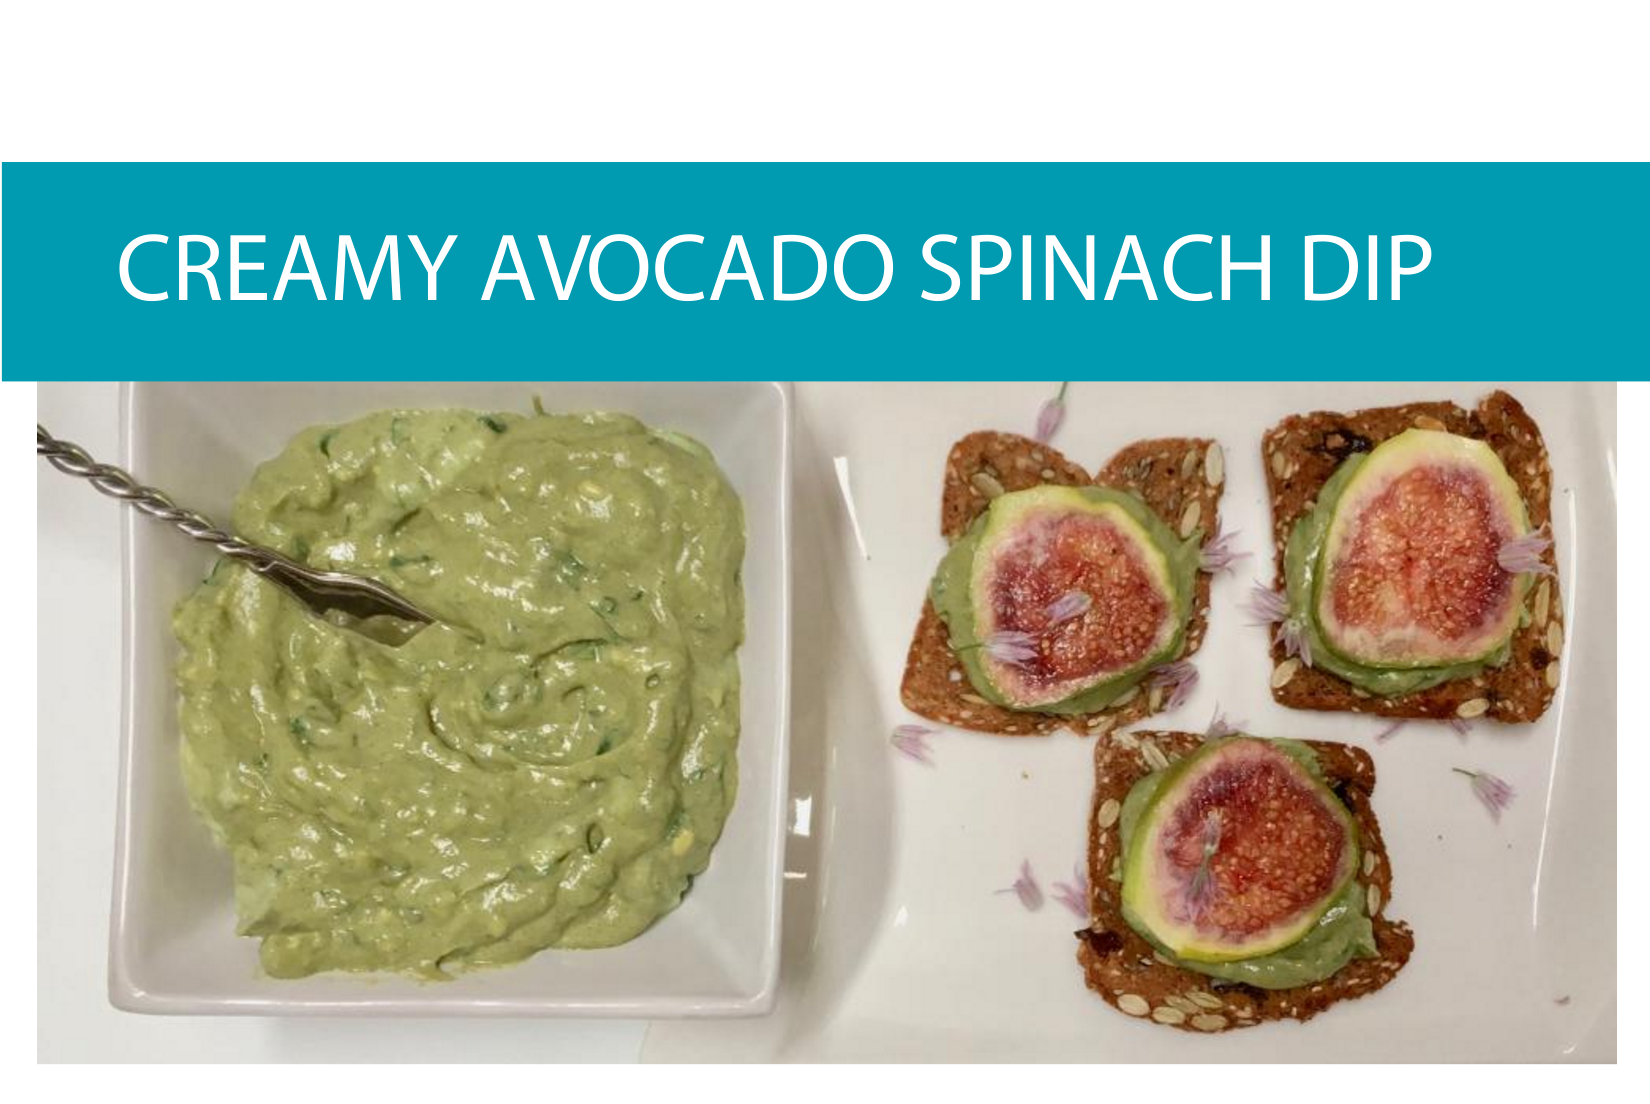 Creamy avocado spinach dip | Foodie Friday recipe